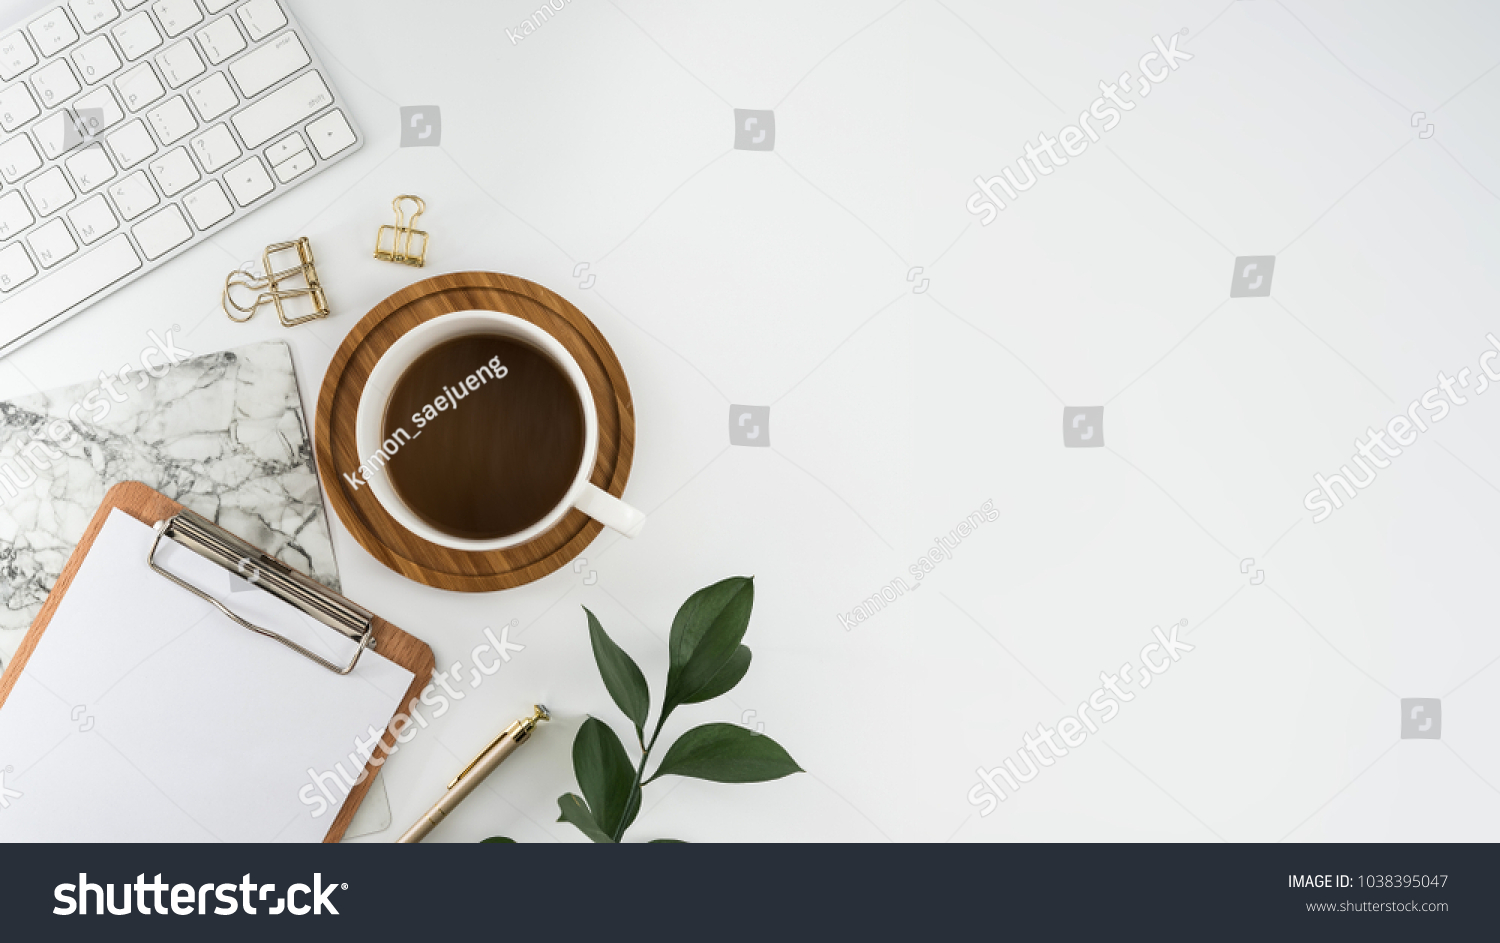 Flat lay, top view office table desk. Workspace with blank clip board, keyboard, office supplies, pencil, green leaf, and coffee cup on white background. #1038395047